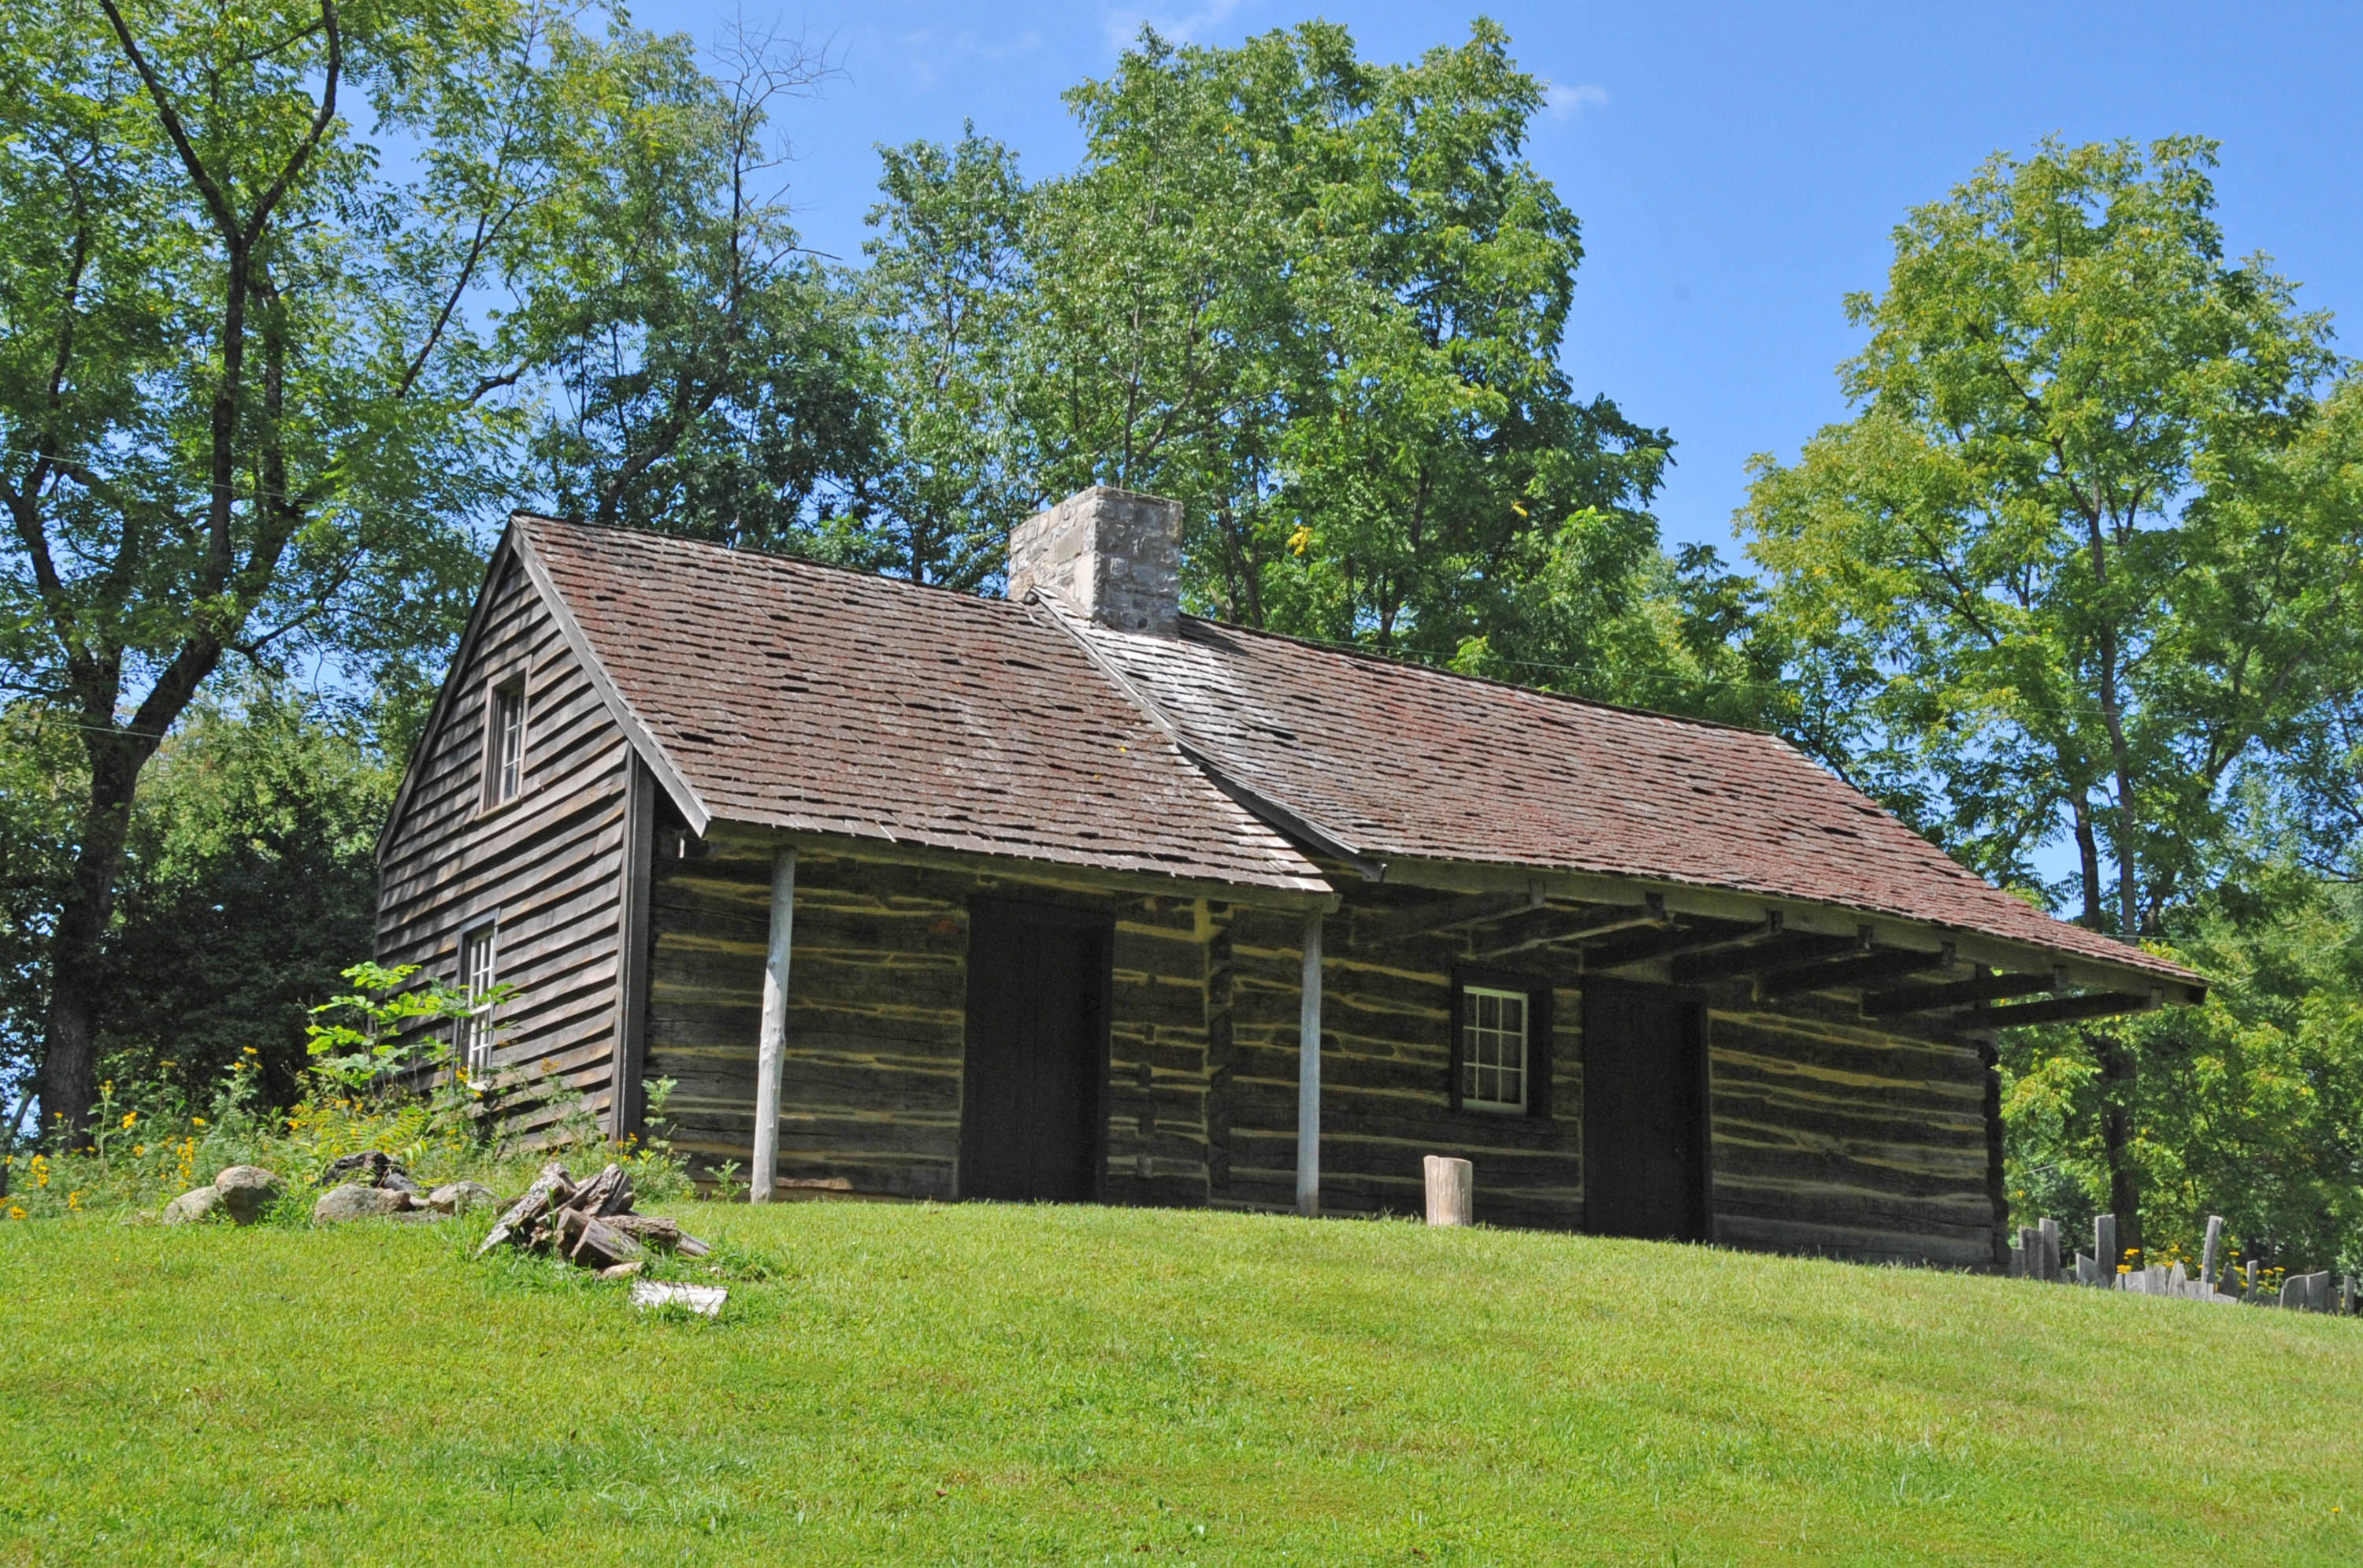 Attirant File:LOG CABIN AND FARM, SUSSEX COUNTY, NEW JERSEY